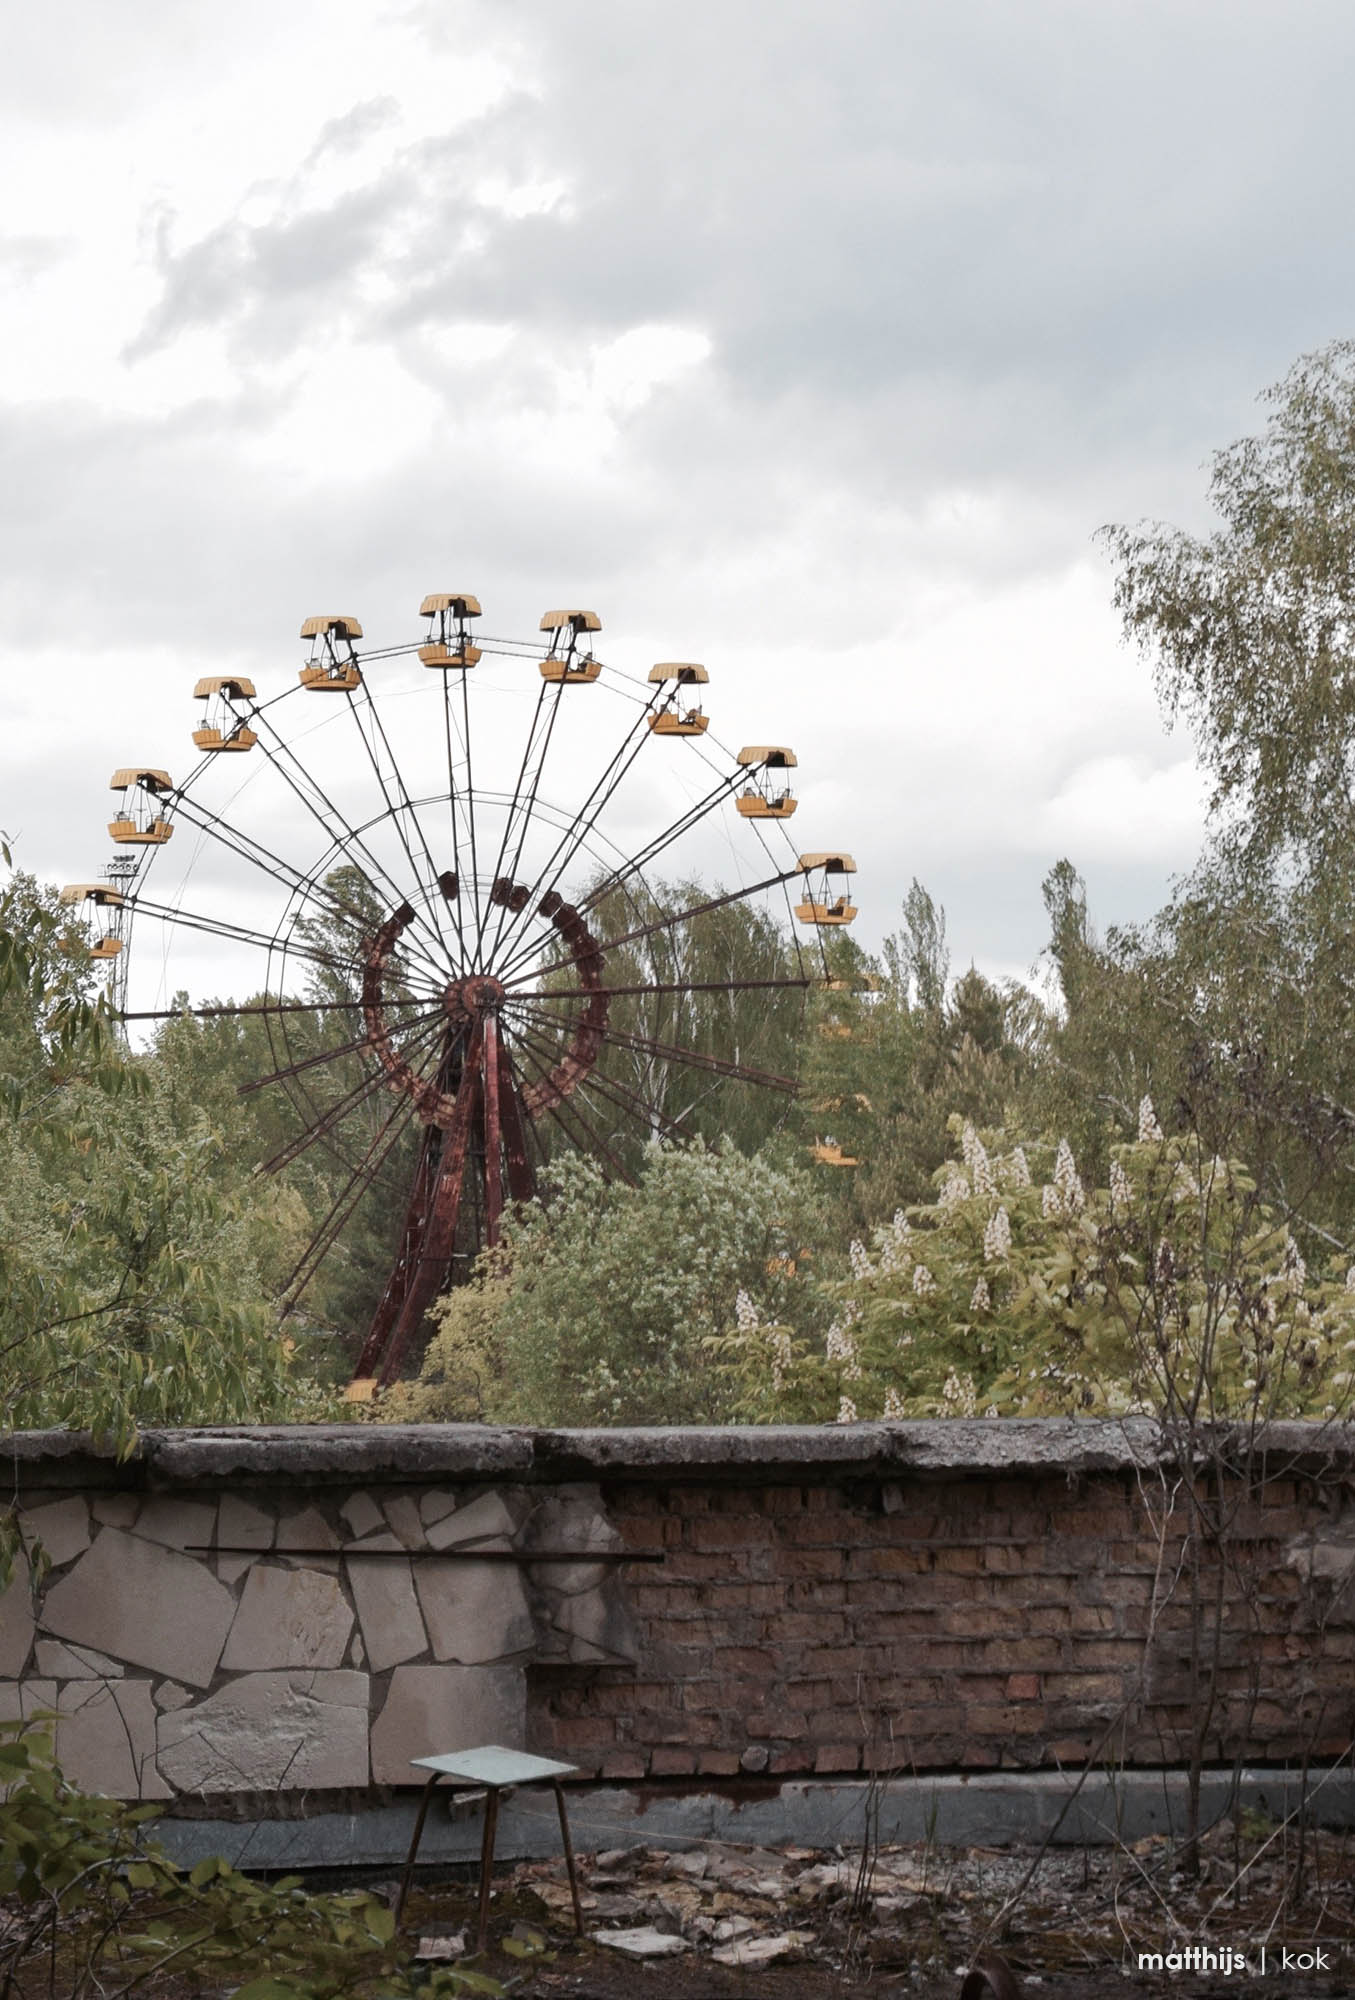 Ferris Wheel, Pripyat Chernobyl | Photo by Matthijs Kok